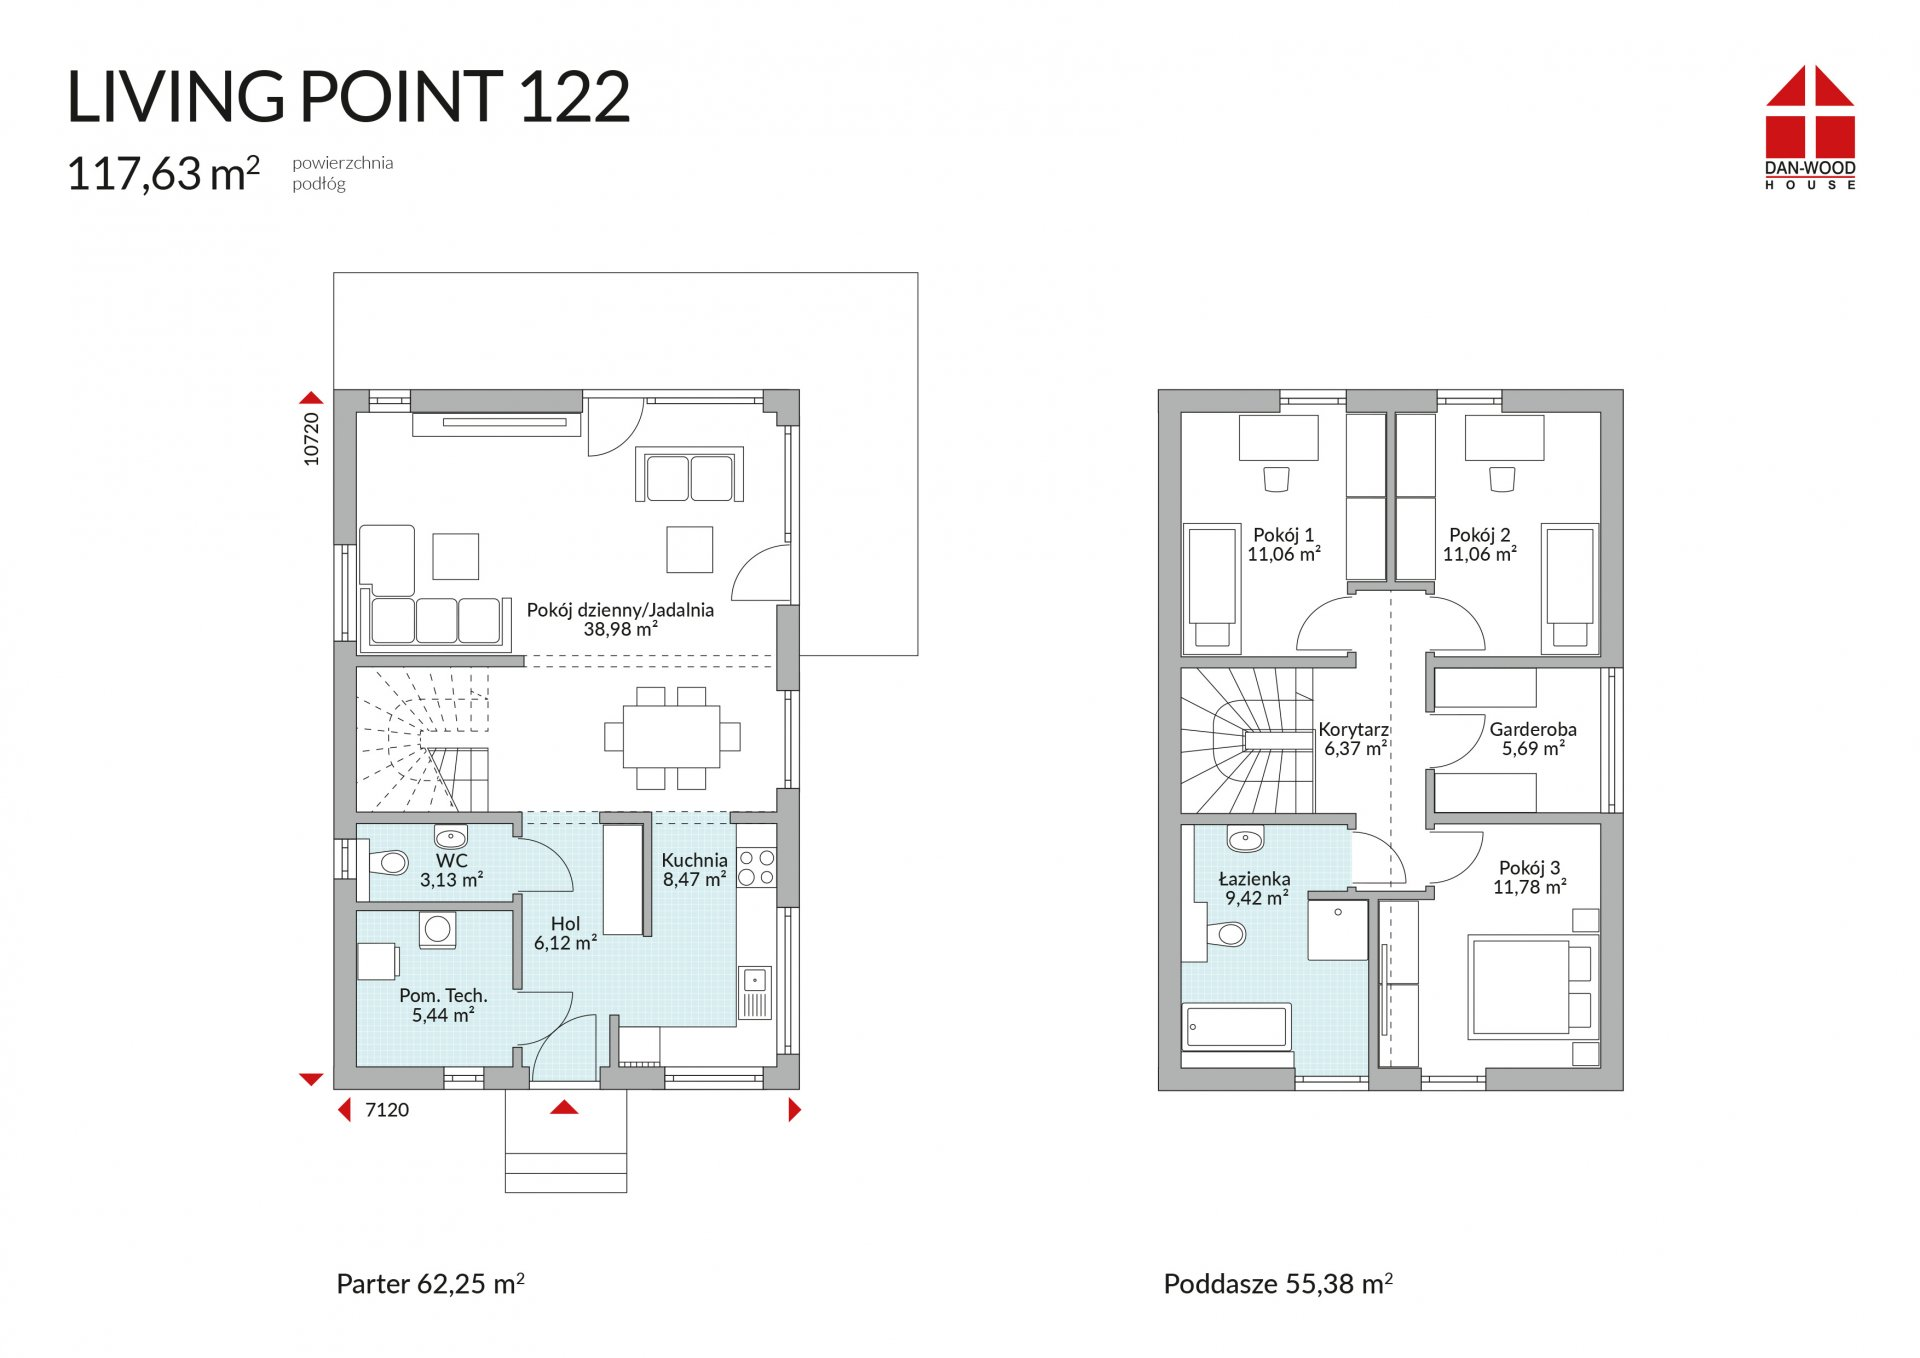 Living Point 122 Danwood